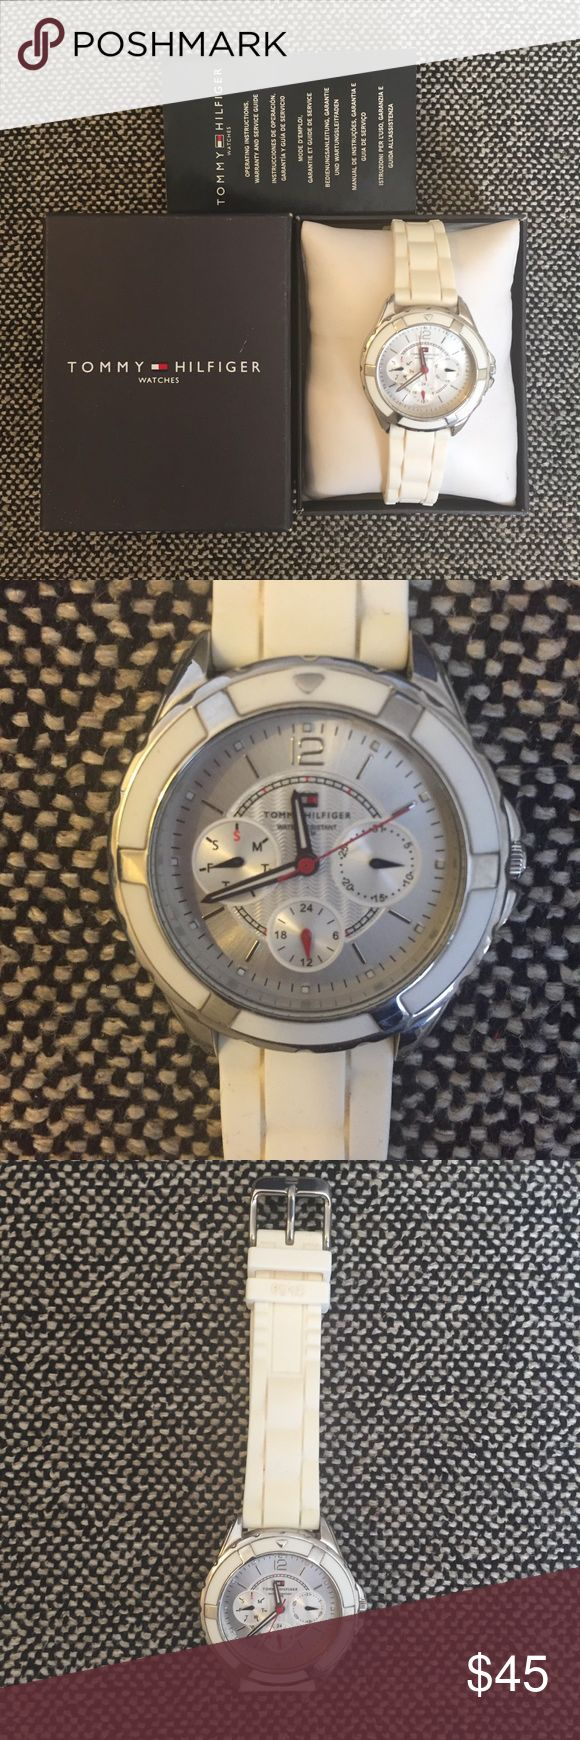 Tommy Hilfiger Watch Stylish watch comes with product detail booklet. Battery has been replaced. Watch is in very good condition and has been used few times. Tommy Hilfiger Accessories Watches